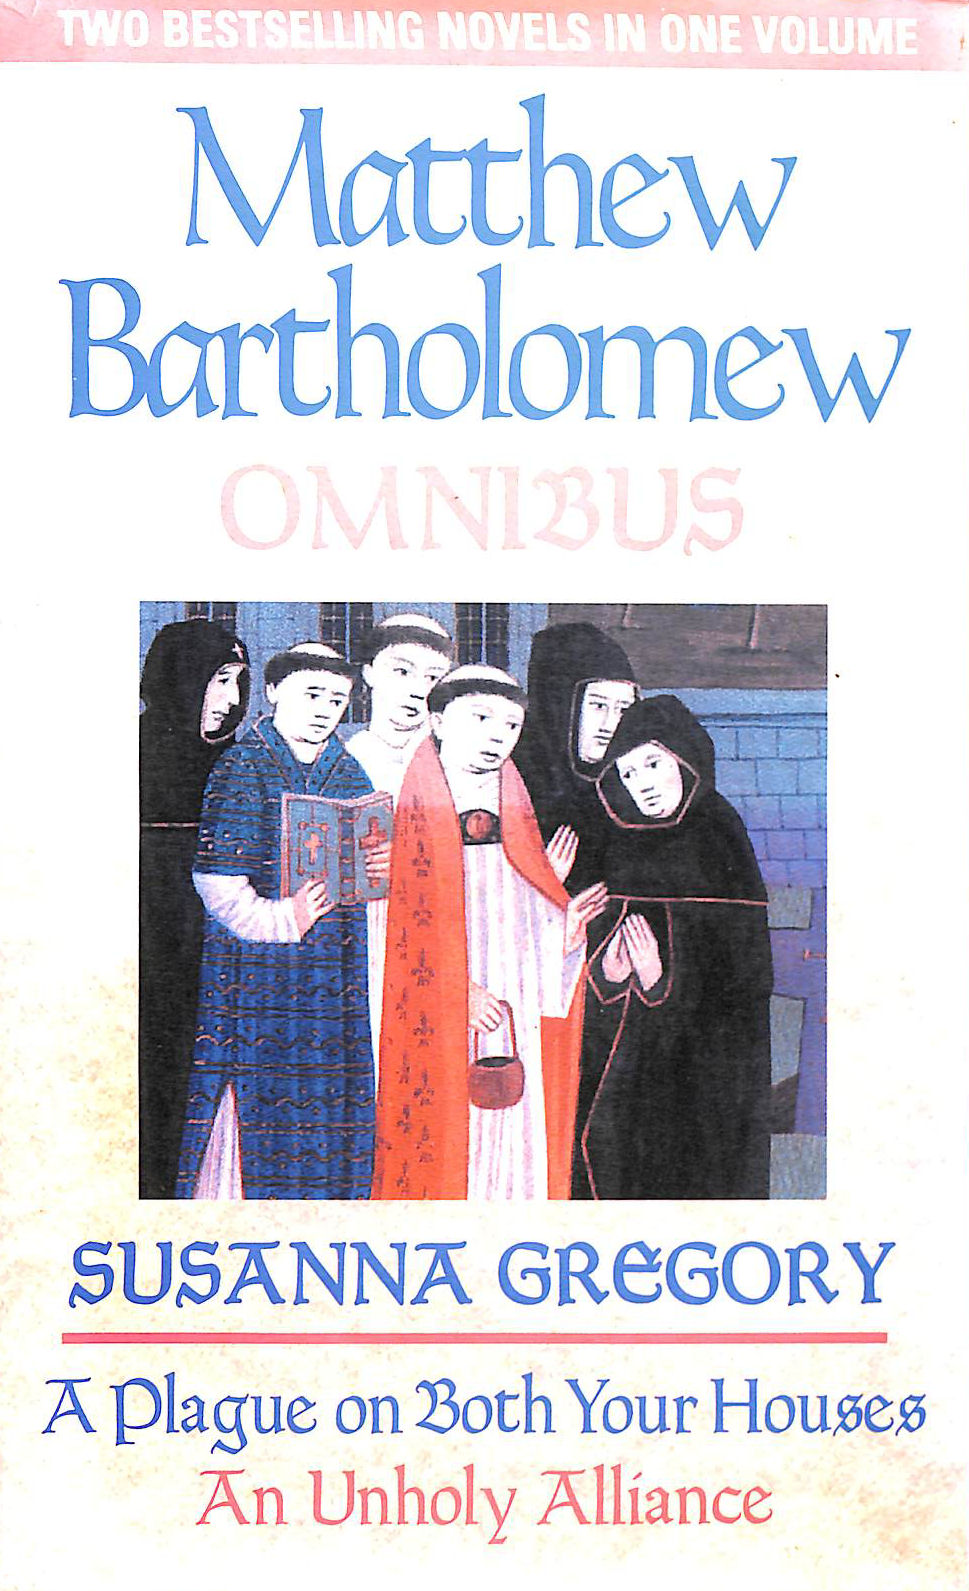 Image for A Plague On Both Your Houses/An Unholy Alliance: The First Matthew Bartholomew Omnibus